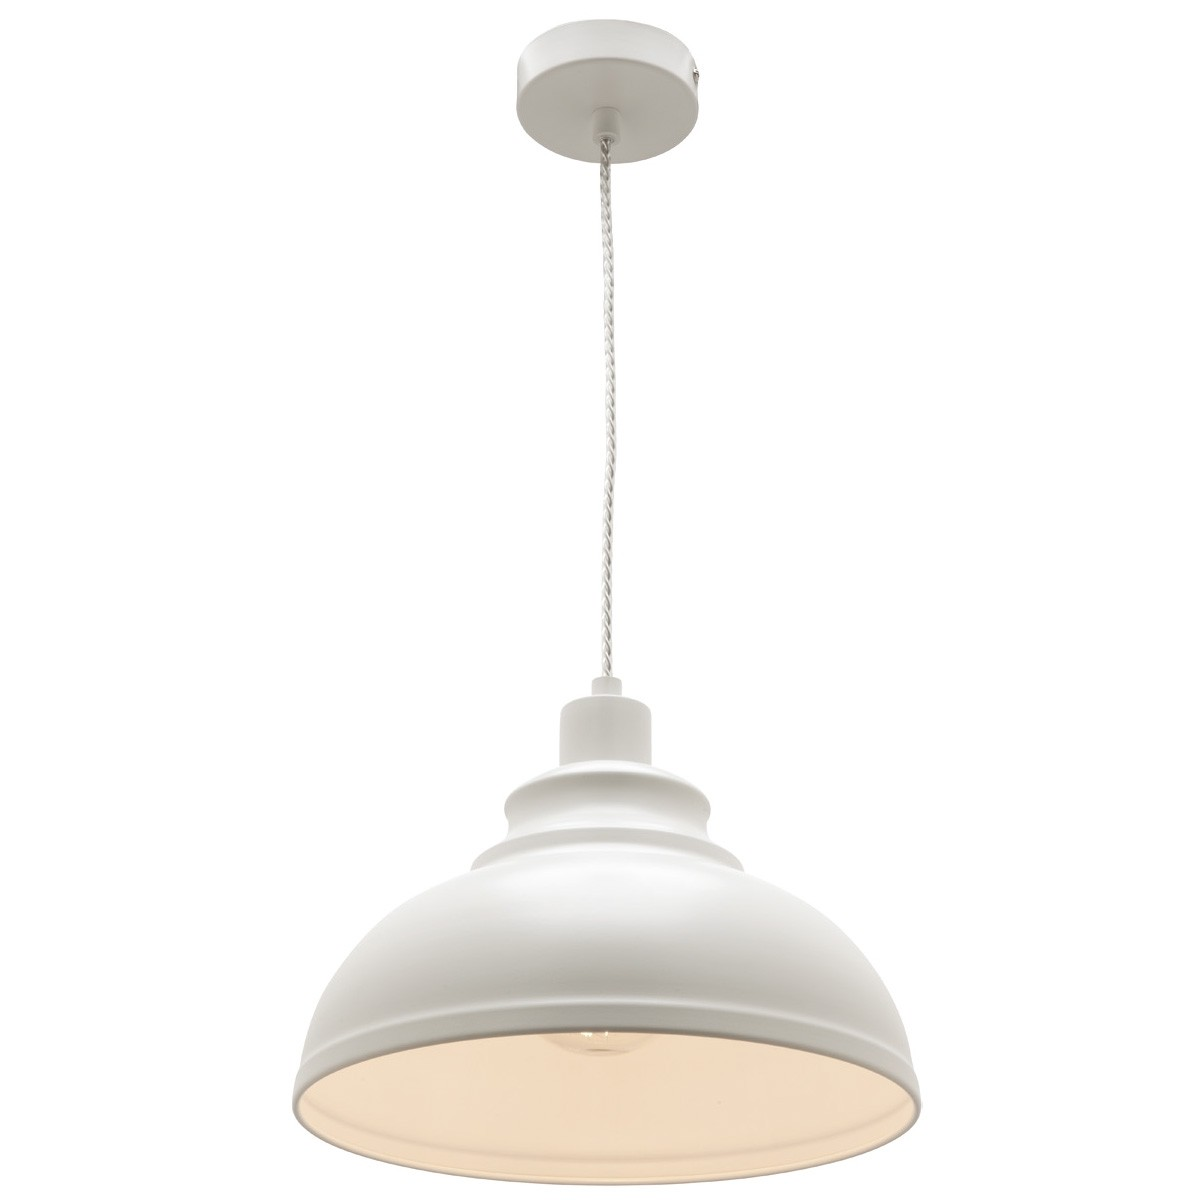 Risto Metal Pendant Light, White